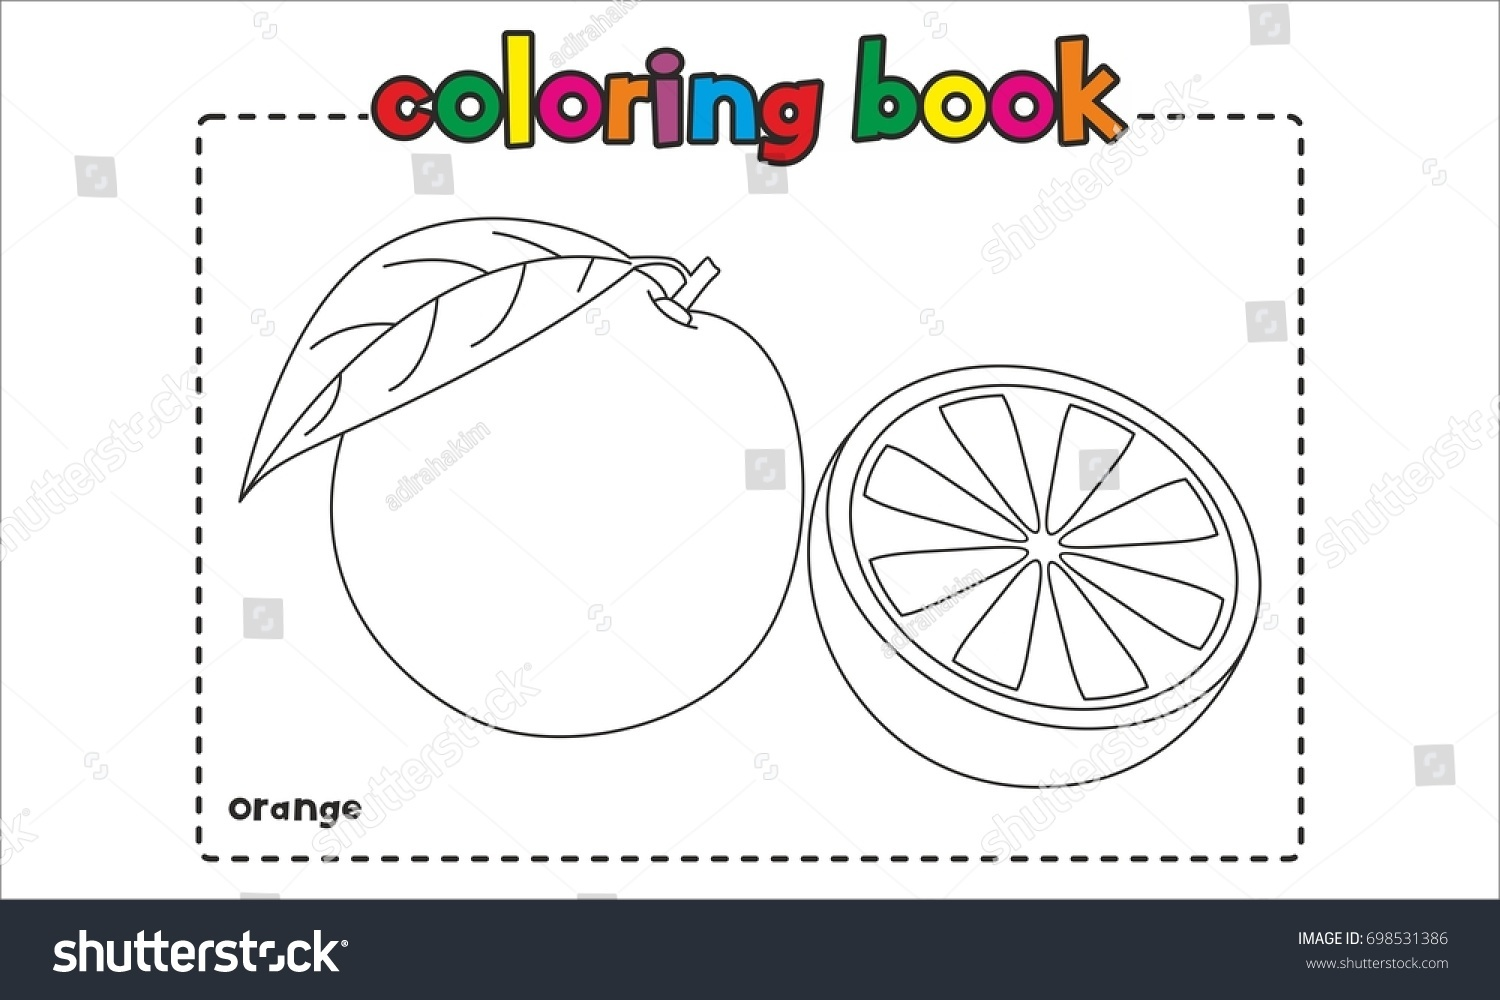 Orange Coloring Book Coloring Page Stock Vector 698531386 - Shutterstock